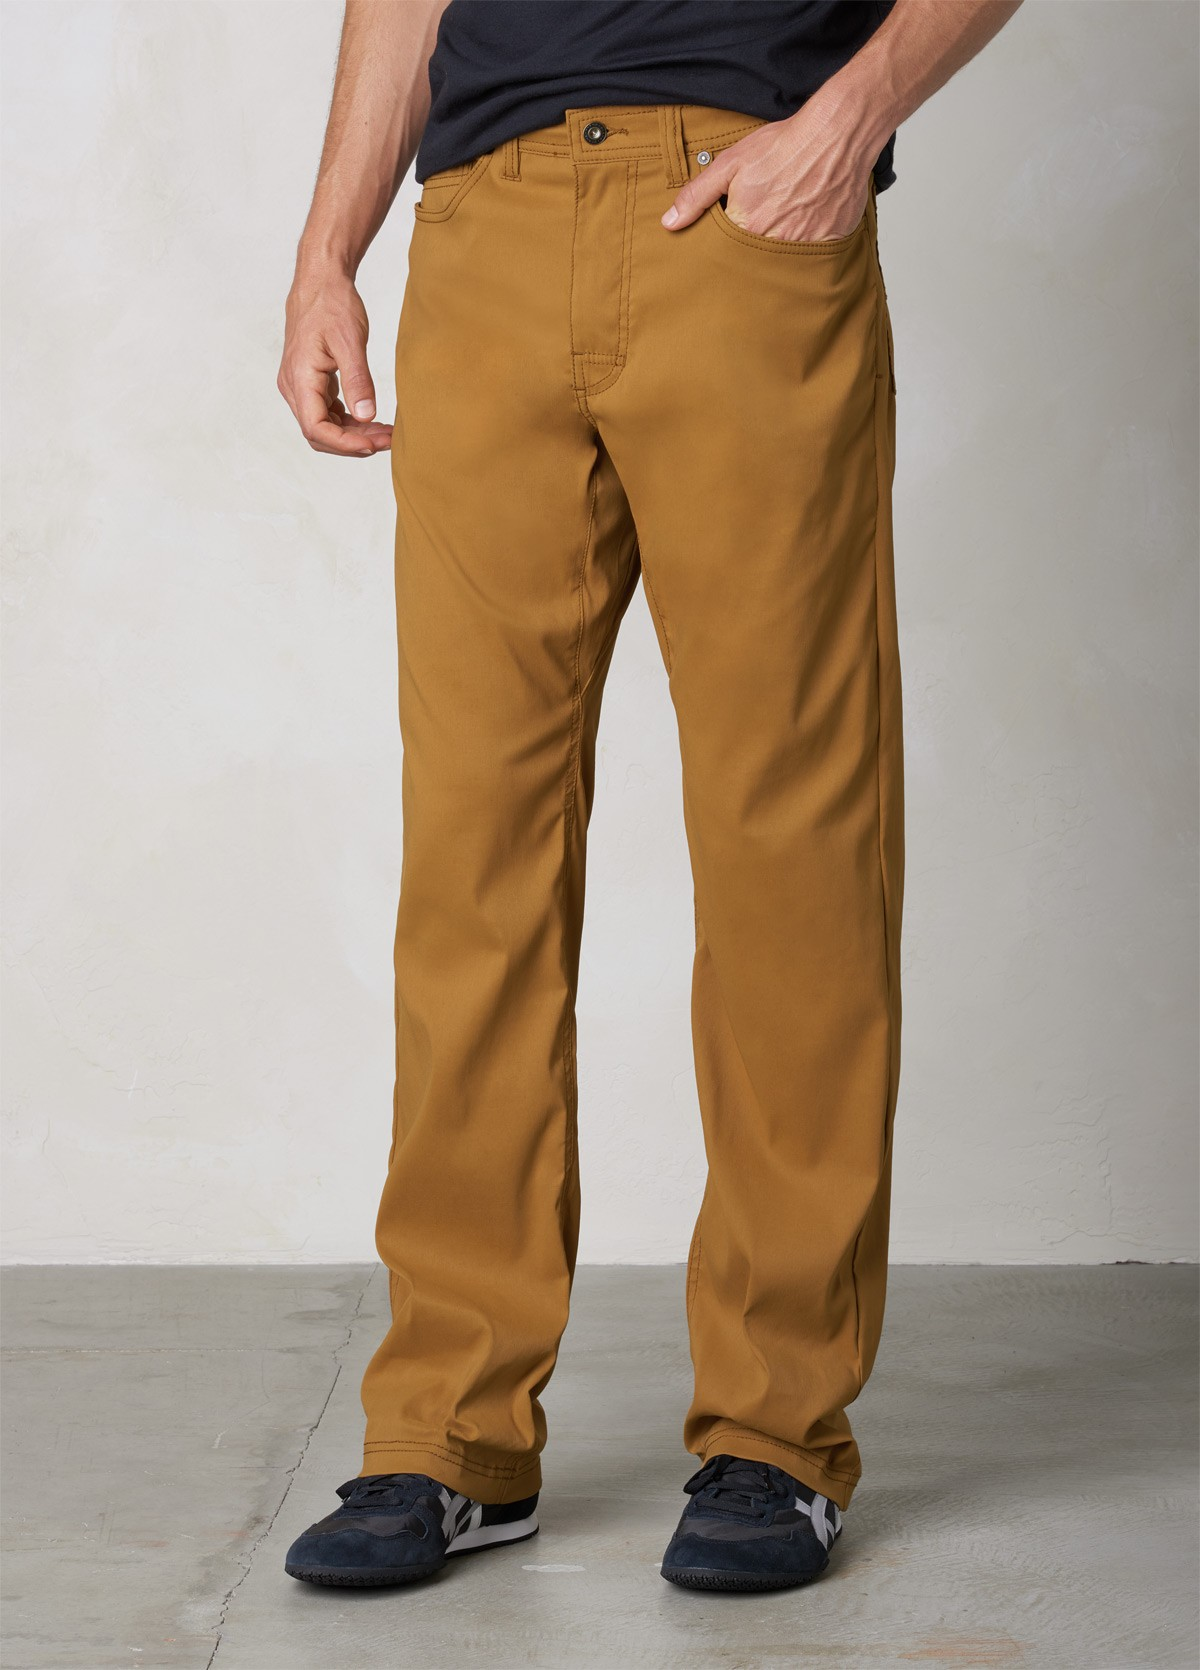 THE BRION'S LOOK MAY BE LEAN, BUT IT PACKS A SERIOUS PUNCH WHEN IT COMES TO RUGGED DURABILITY. THIS ALL-PURPOSE PANT FEATURES THE SAME BENEFITS AS OUR BEST SELLING STRETCH ZION PANT, BUT WITH A SLIM FIT AND SLIGHTLY TAPERED LEGS. WATER AND ABRASION RESISTANT, AND STYLED WITH 5 POCKETS AND A FIXED WAIST, THERE'S NO TELLING WHERE THIS PANT IS GOING TO TAKE YOU.